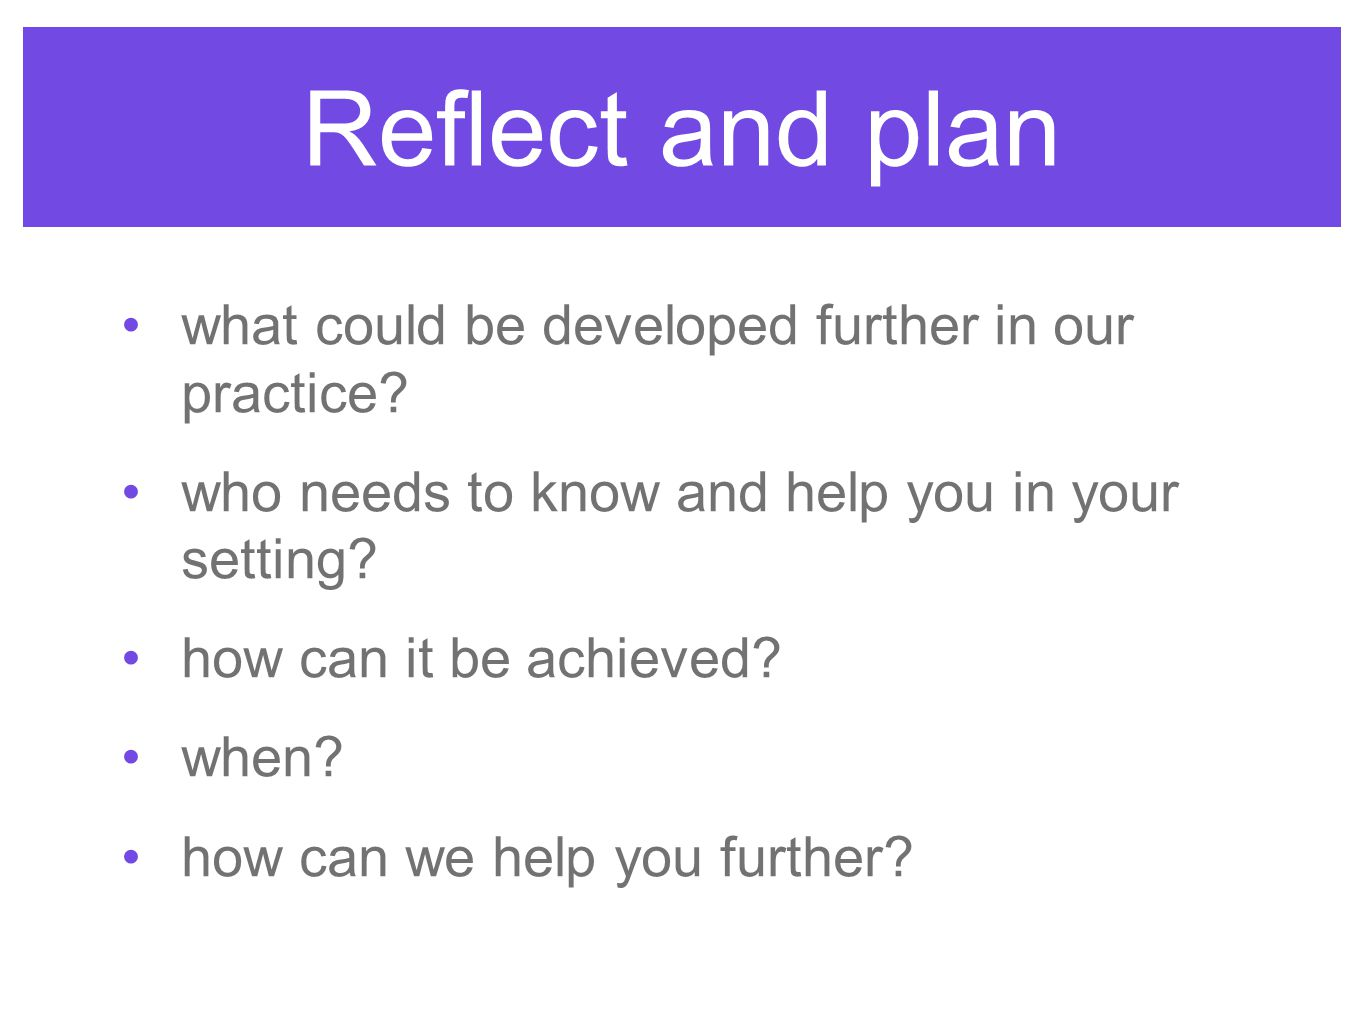 Reflect and plan what could be developed further in our practice